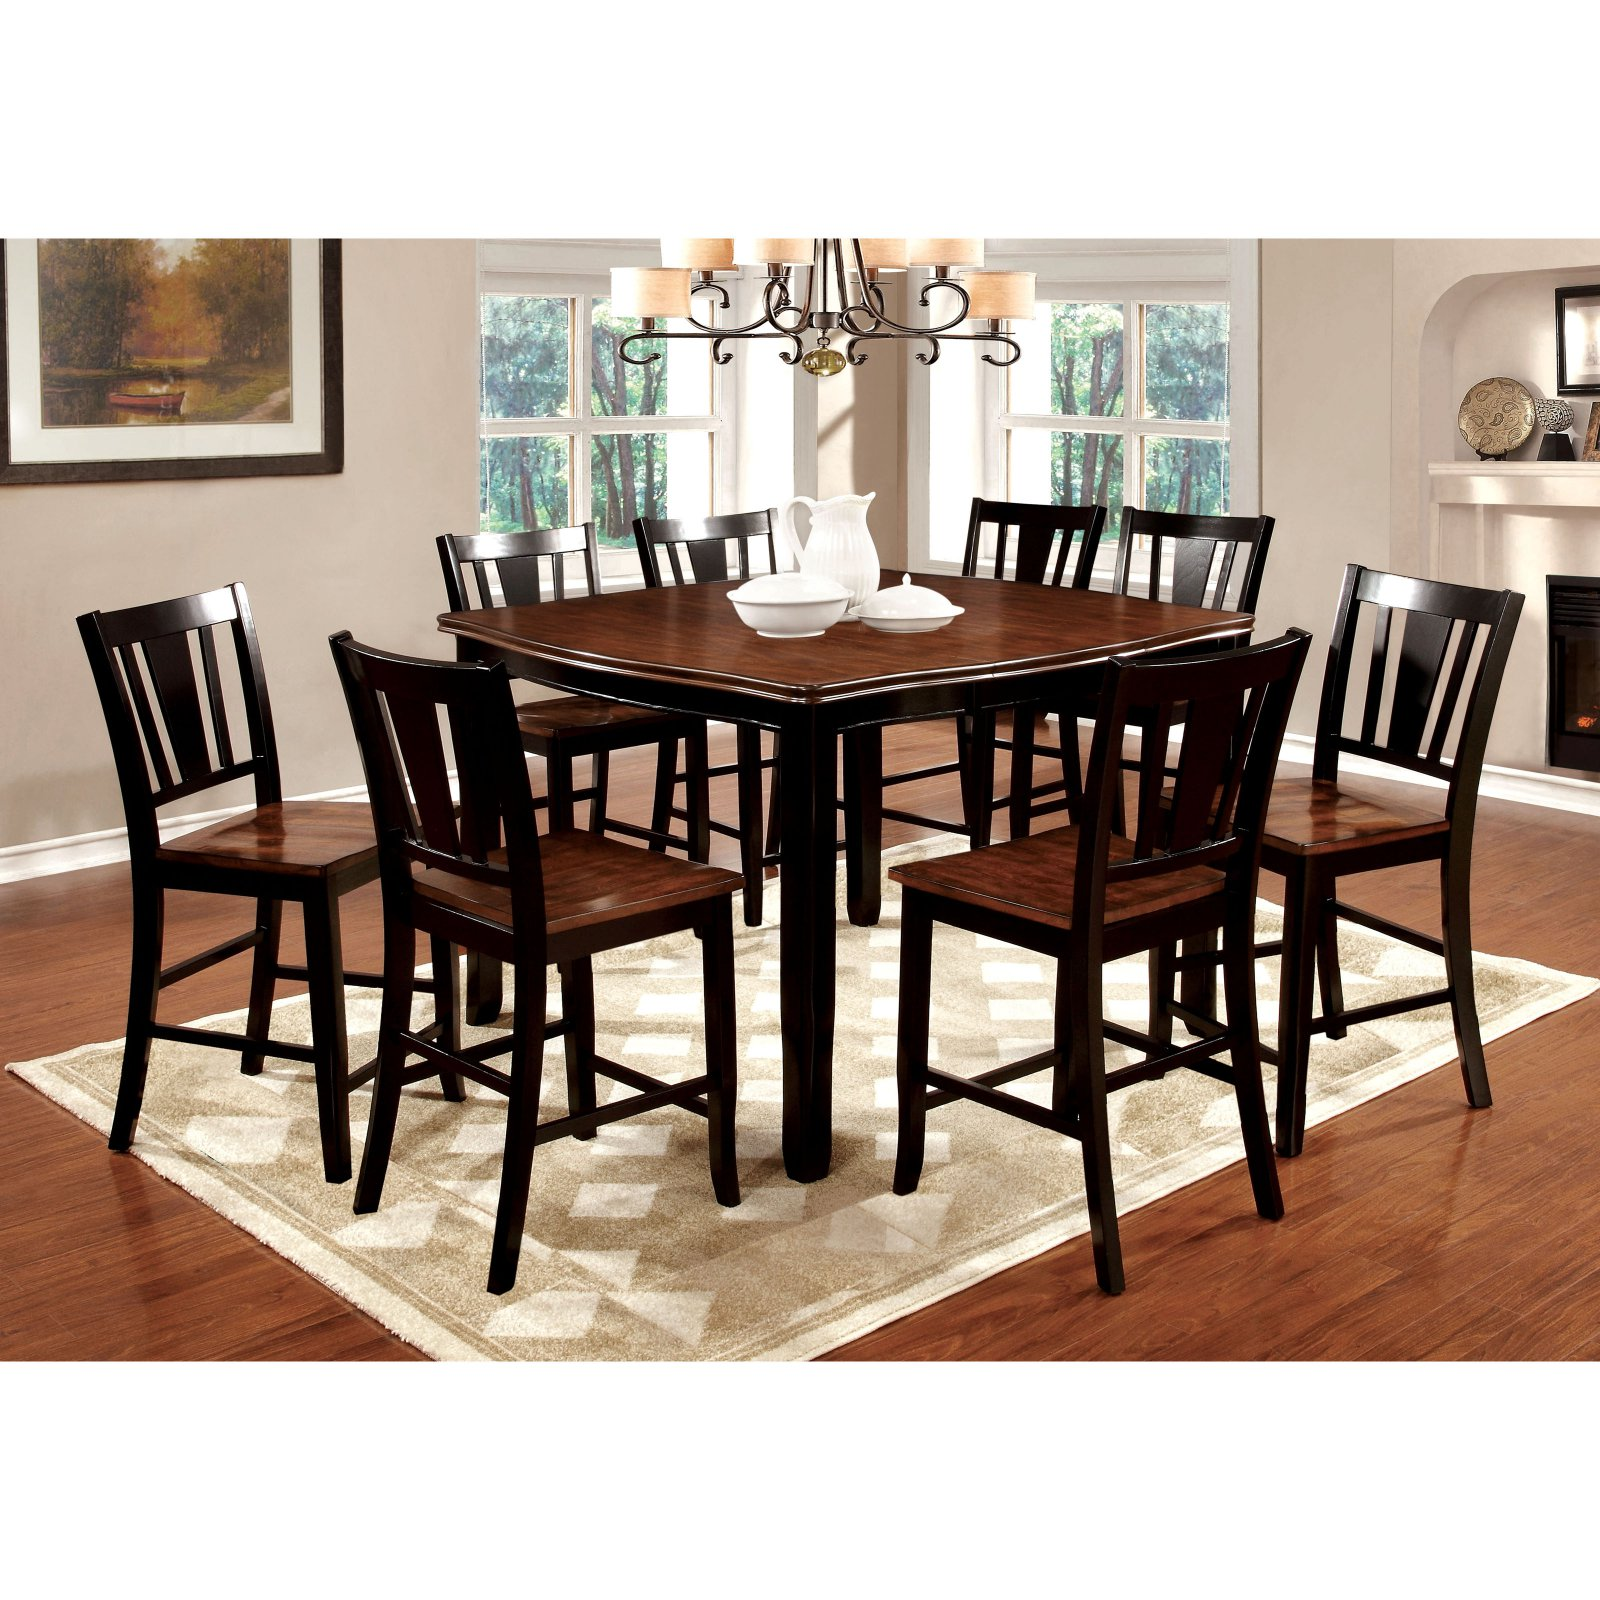 Furniture Of America Lohman 9 Piece Counter Height Dual Tone Dining Table  Set